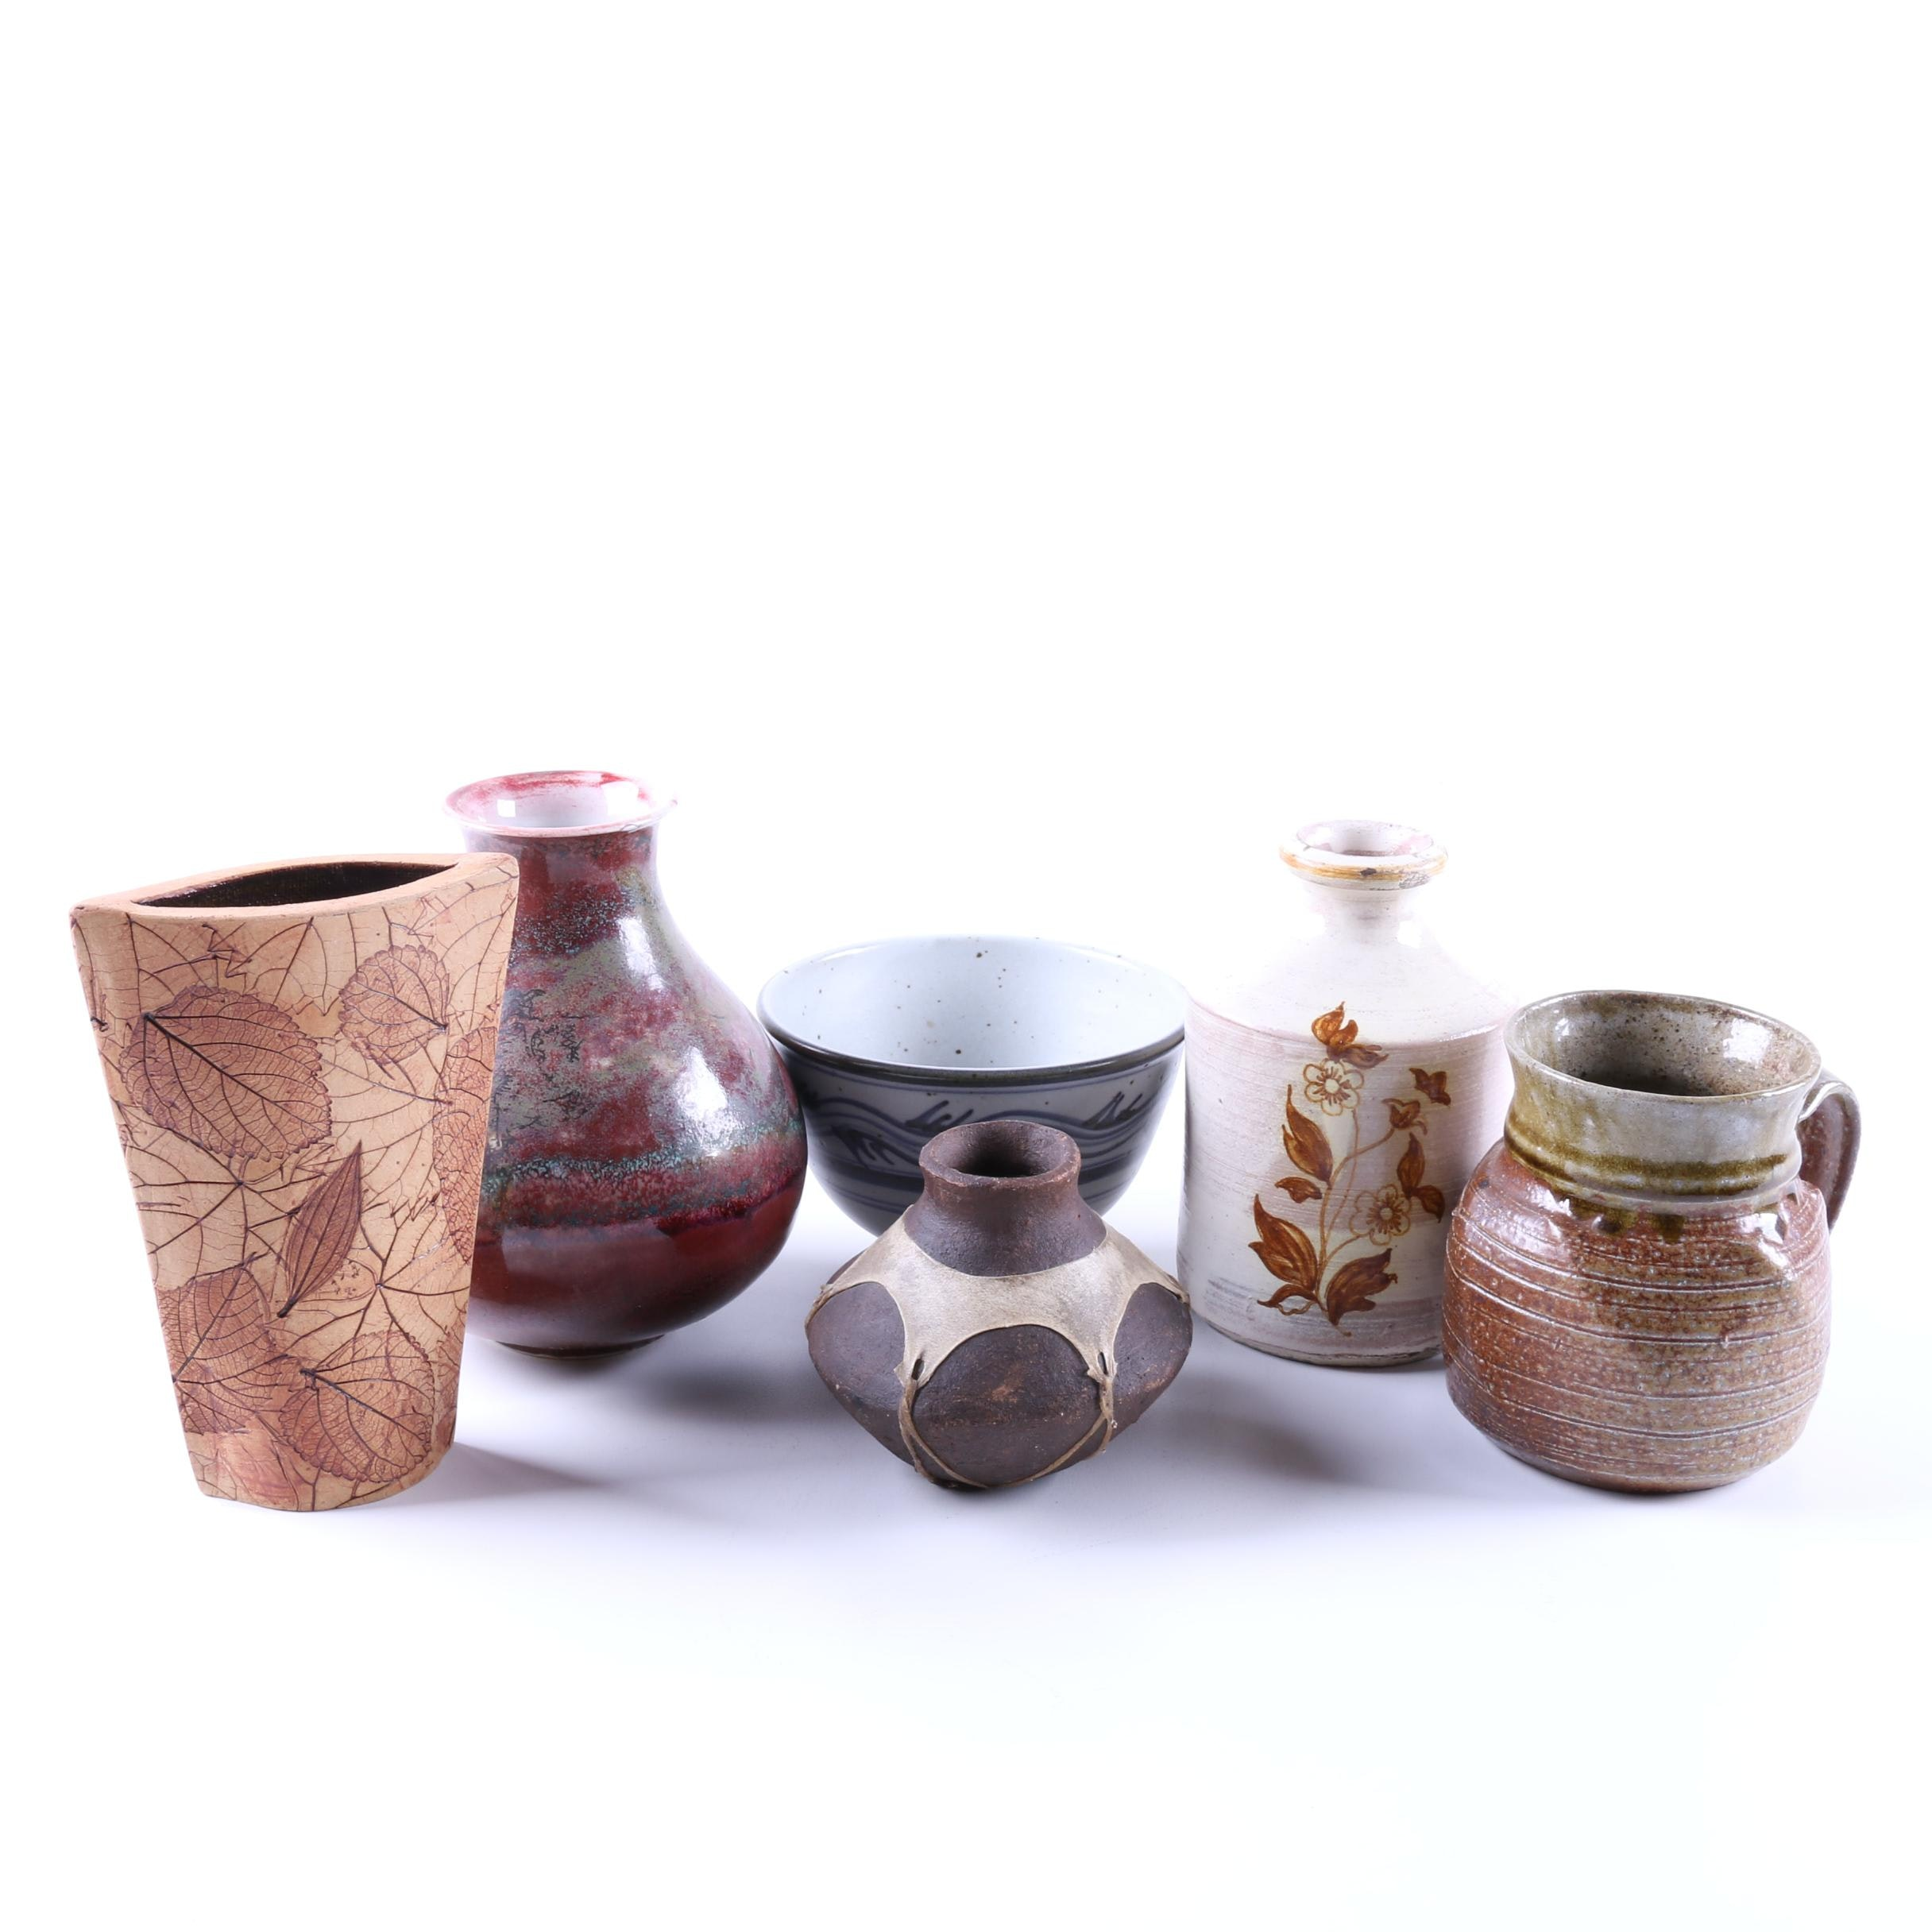 Collection of Hand Thrown Stoneware and Porcelain Pottery